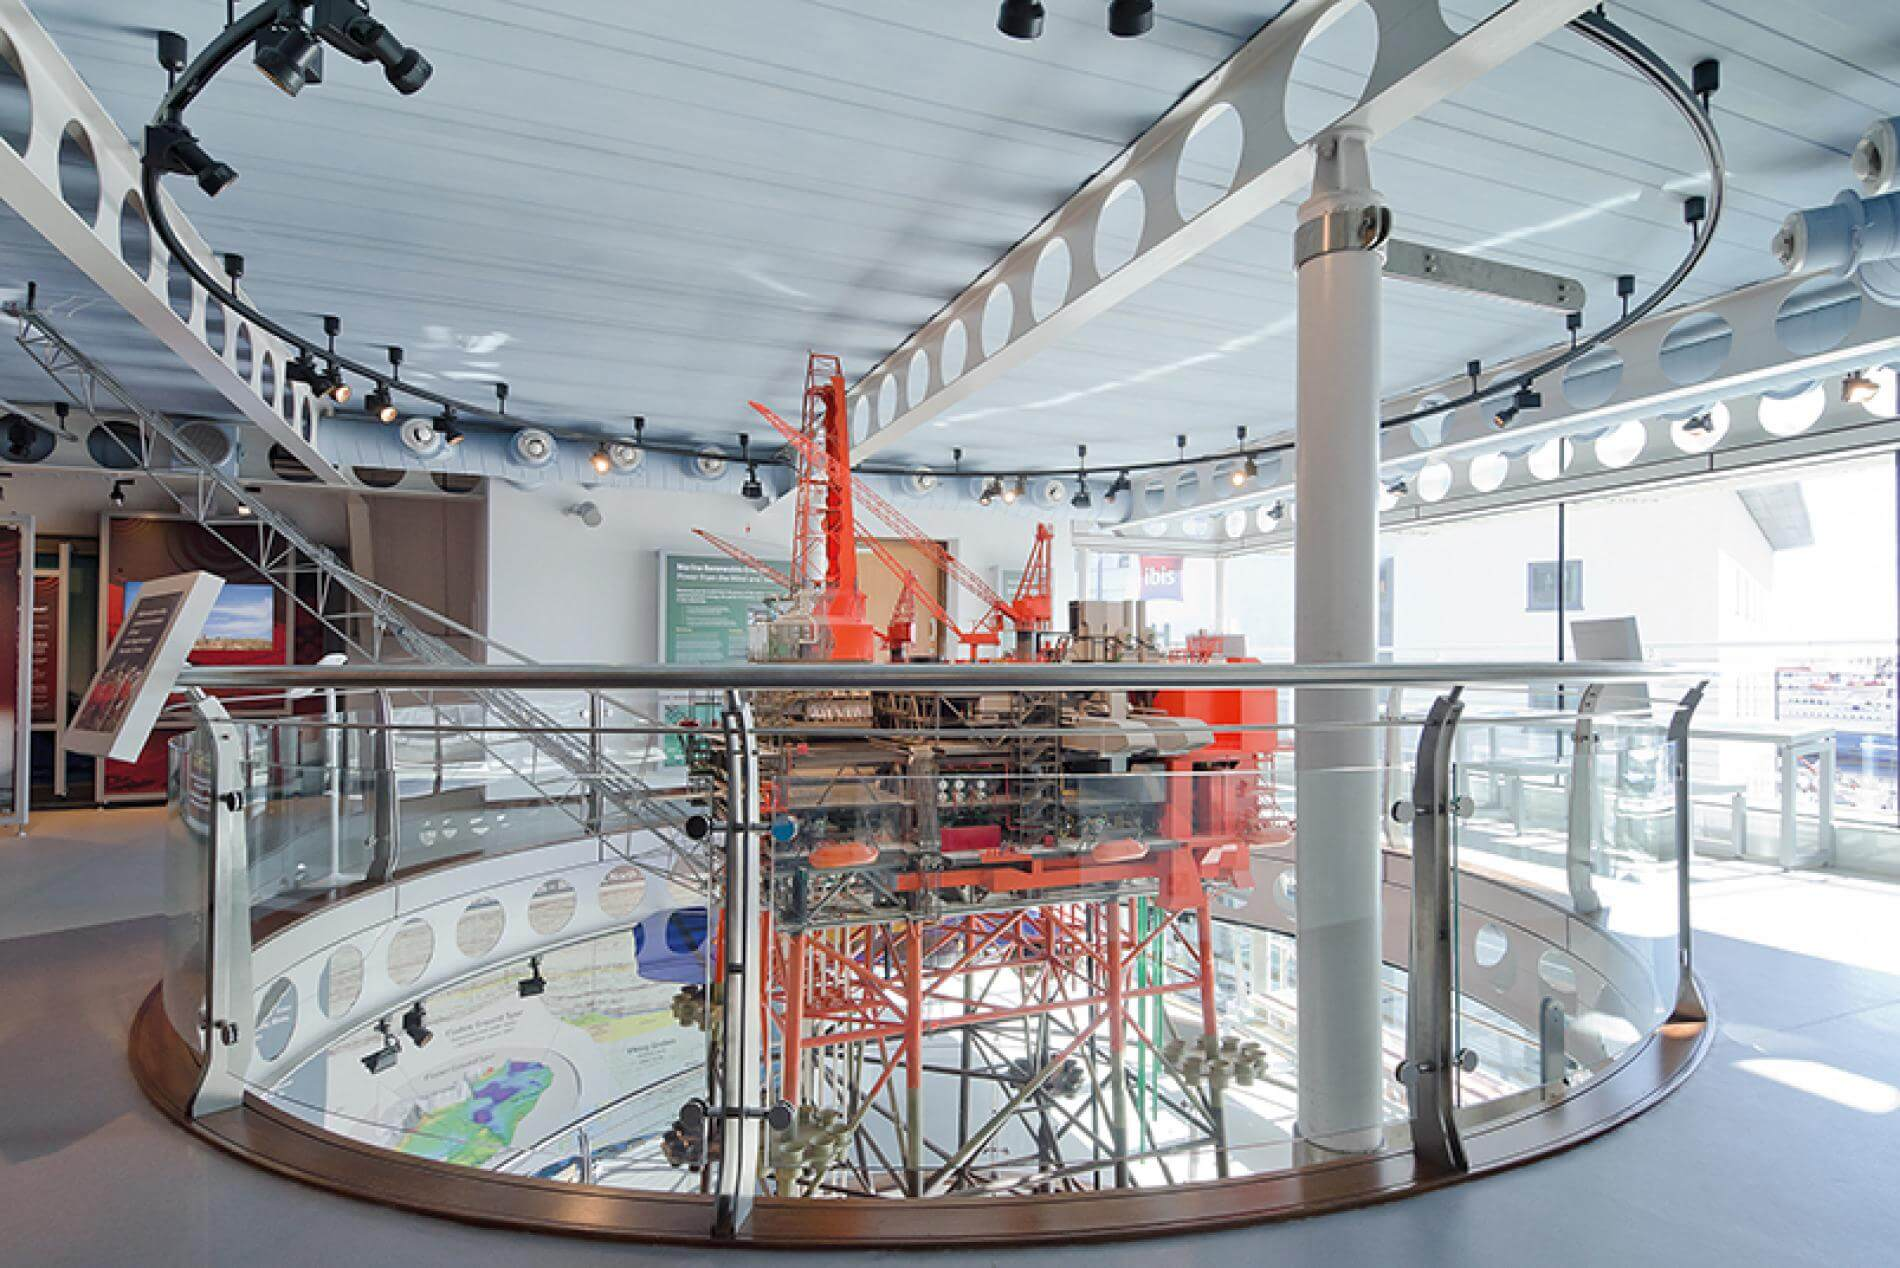 The oil rig goes up the centre of the museum and is a central point.